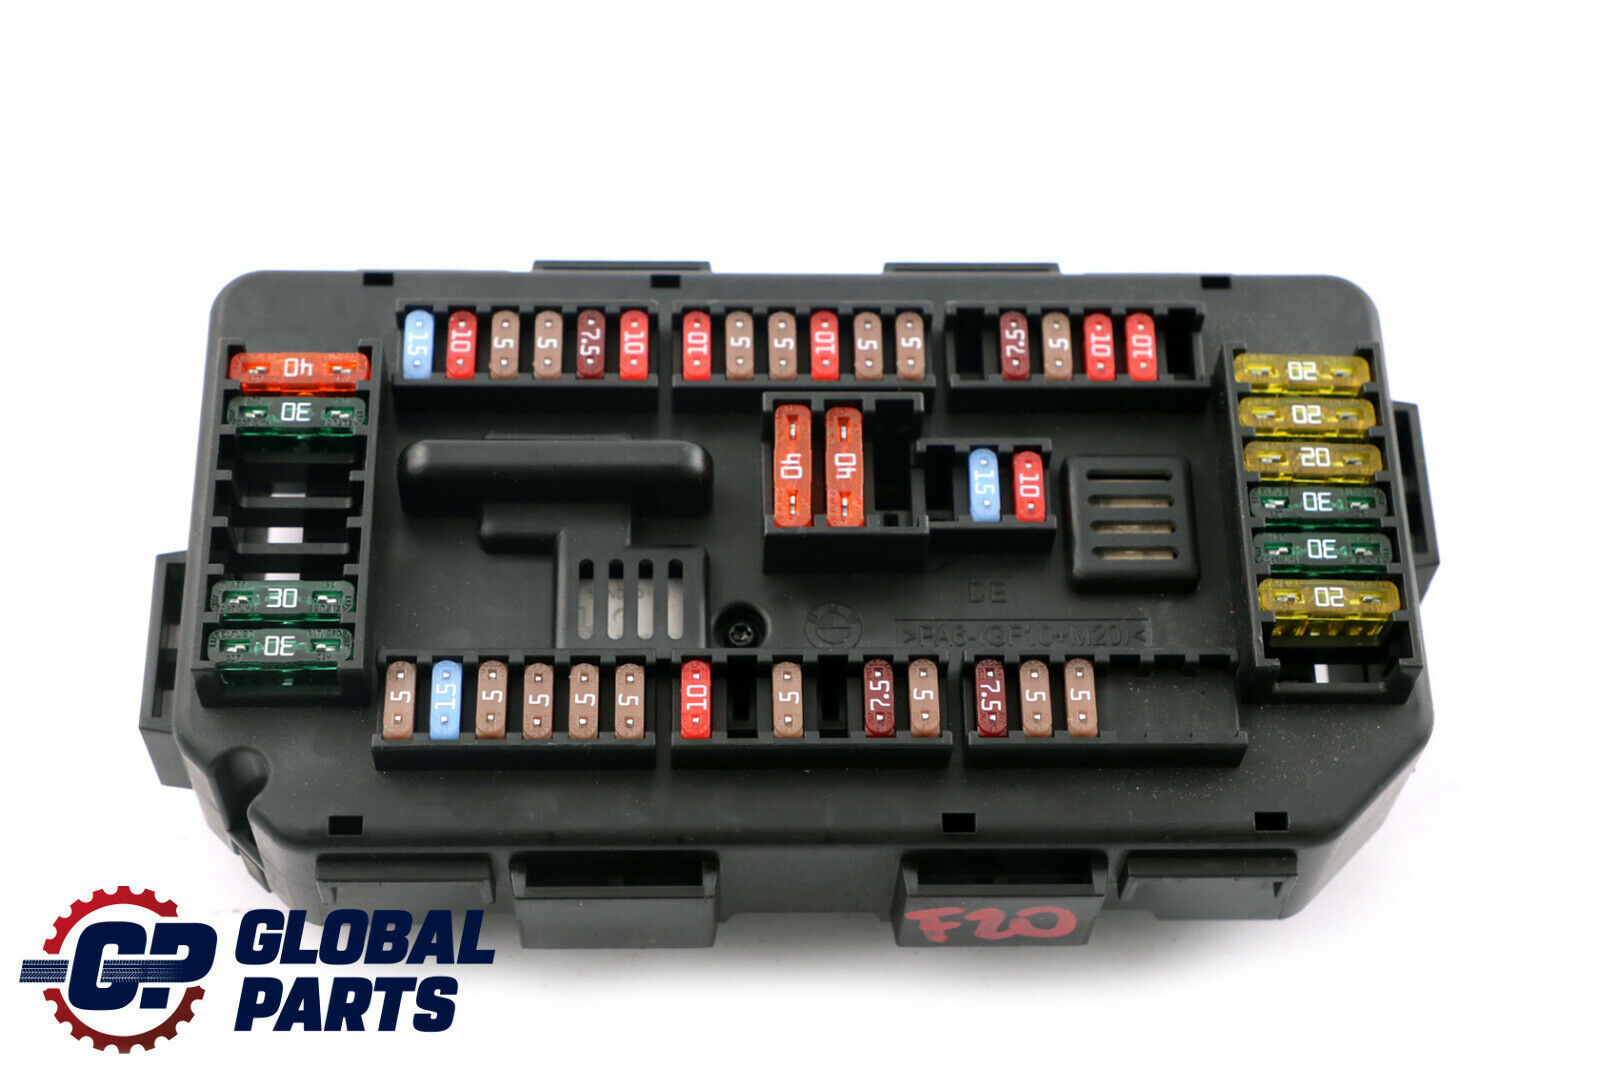 Bmw 1 3 4 Series F20 F21 F30 F31 F32 Power Distribution Fuse Box Of 8only 2 Available